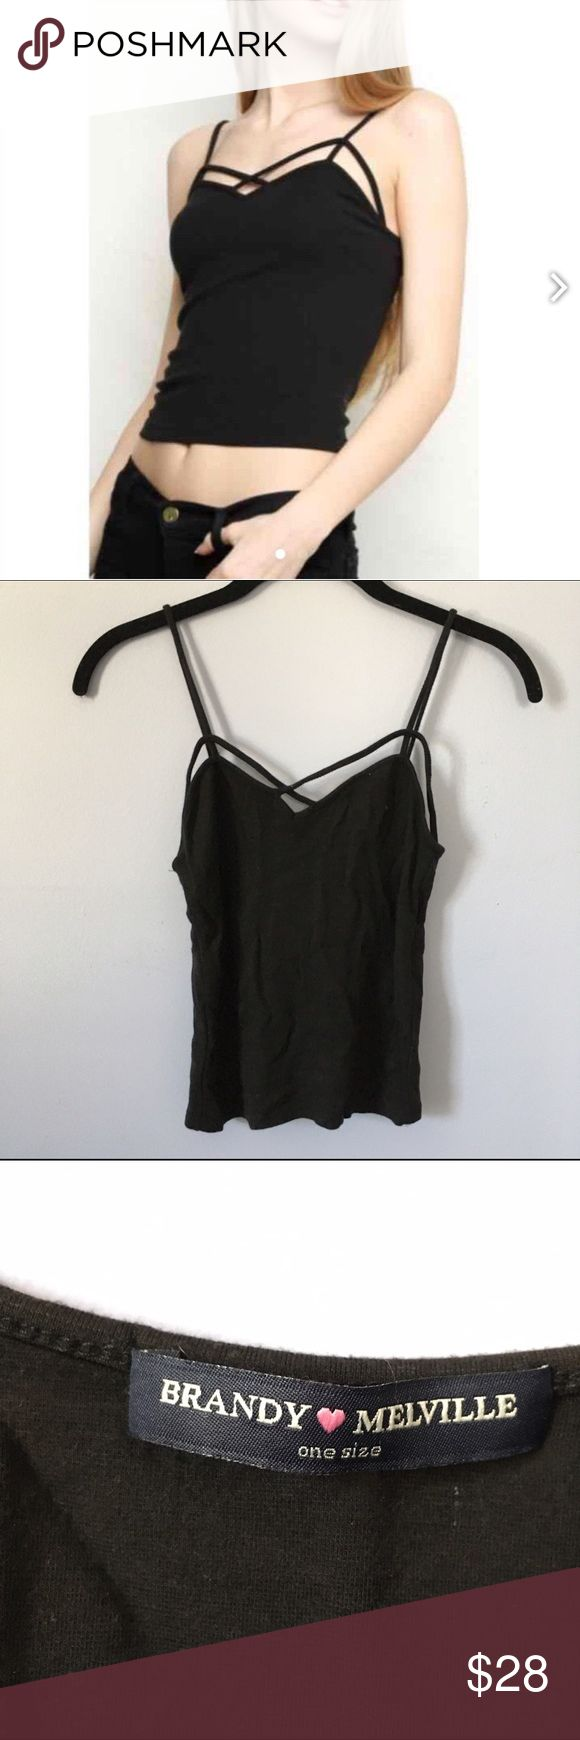 Black Strappy Criss Cross Tank Top Adorable black stretchy tank top with a strapping cross cross front! Perfect for layering or by it self! Never worn! Brandy Melville Tops Tank Tops